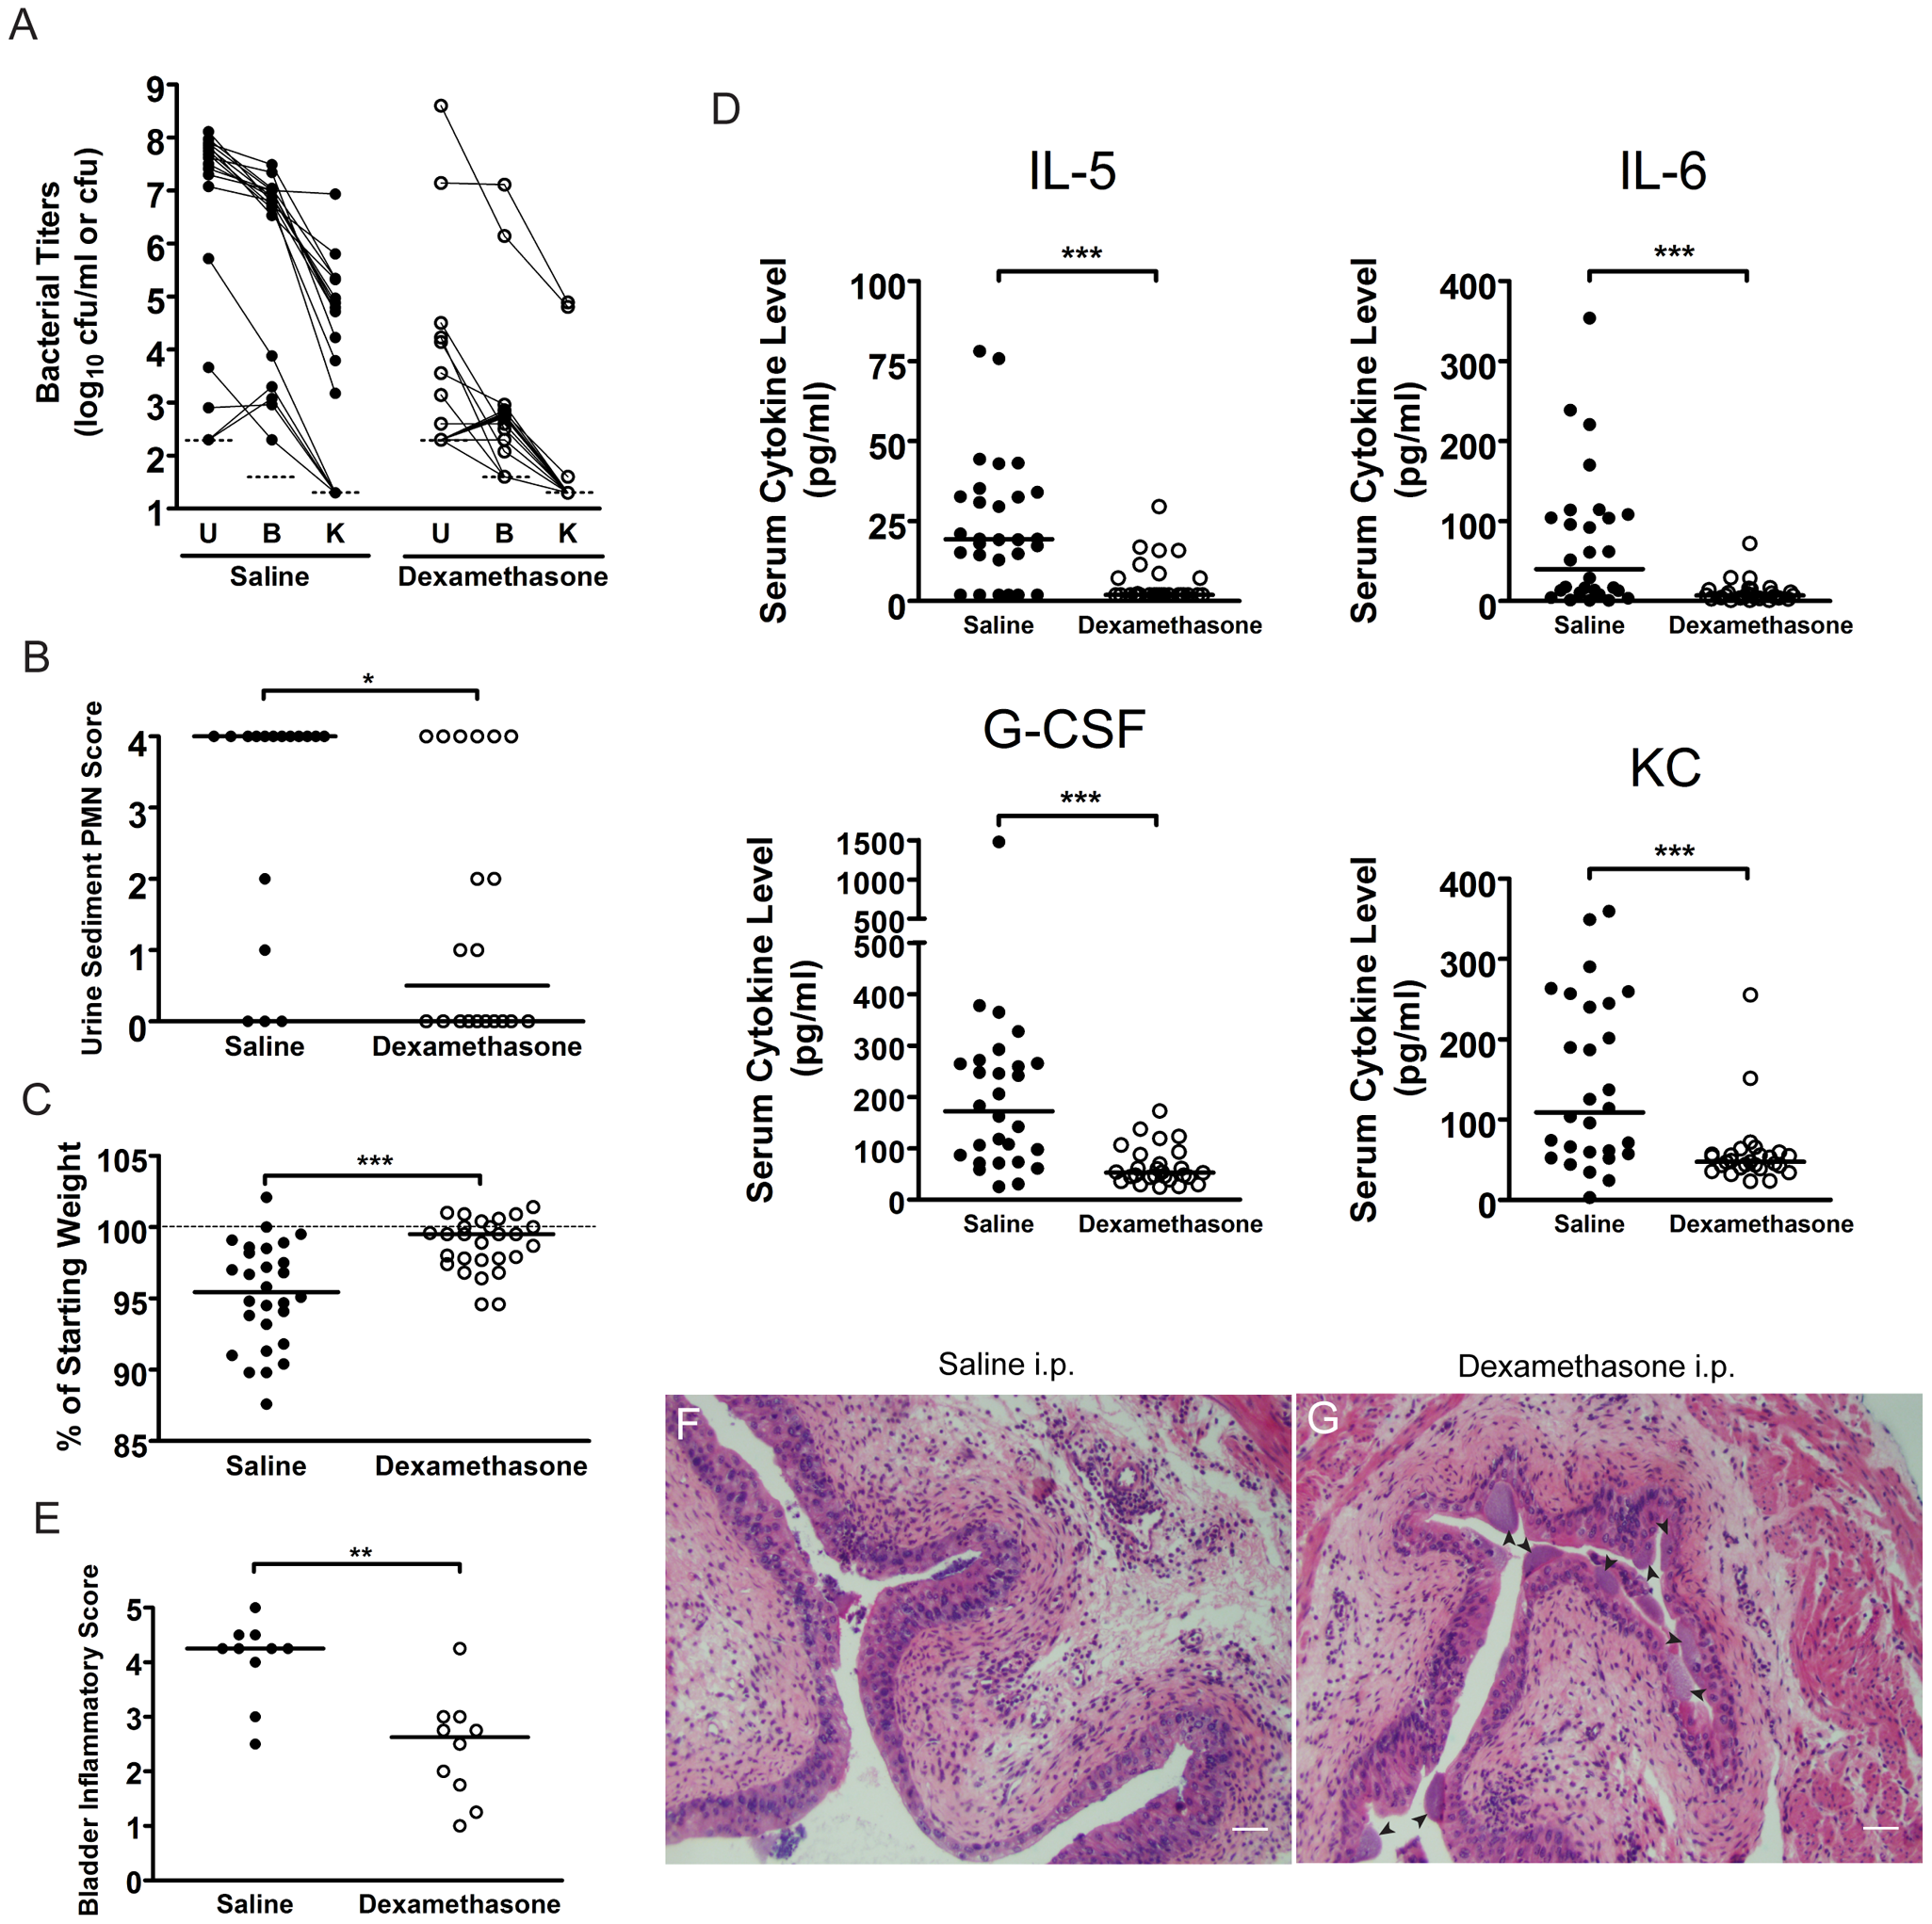 C3H mice treated with the glucocorticoid anti-inflammatory drug, dexamethasone, just prior to infection have muted acute inflammatory responses to UPEC infection and are protected against chronic cystitis.